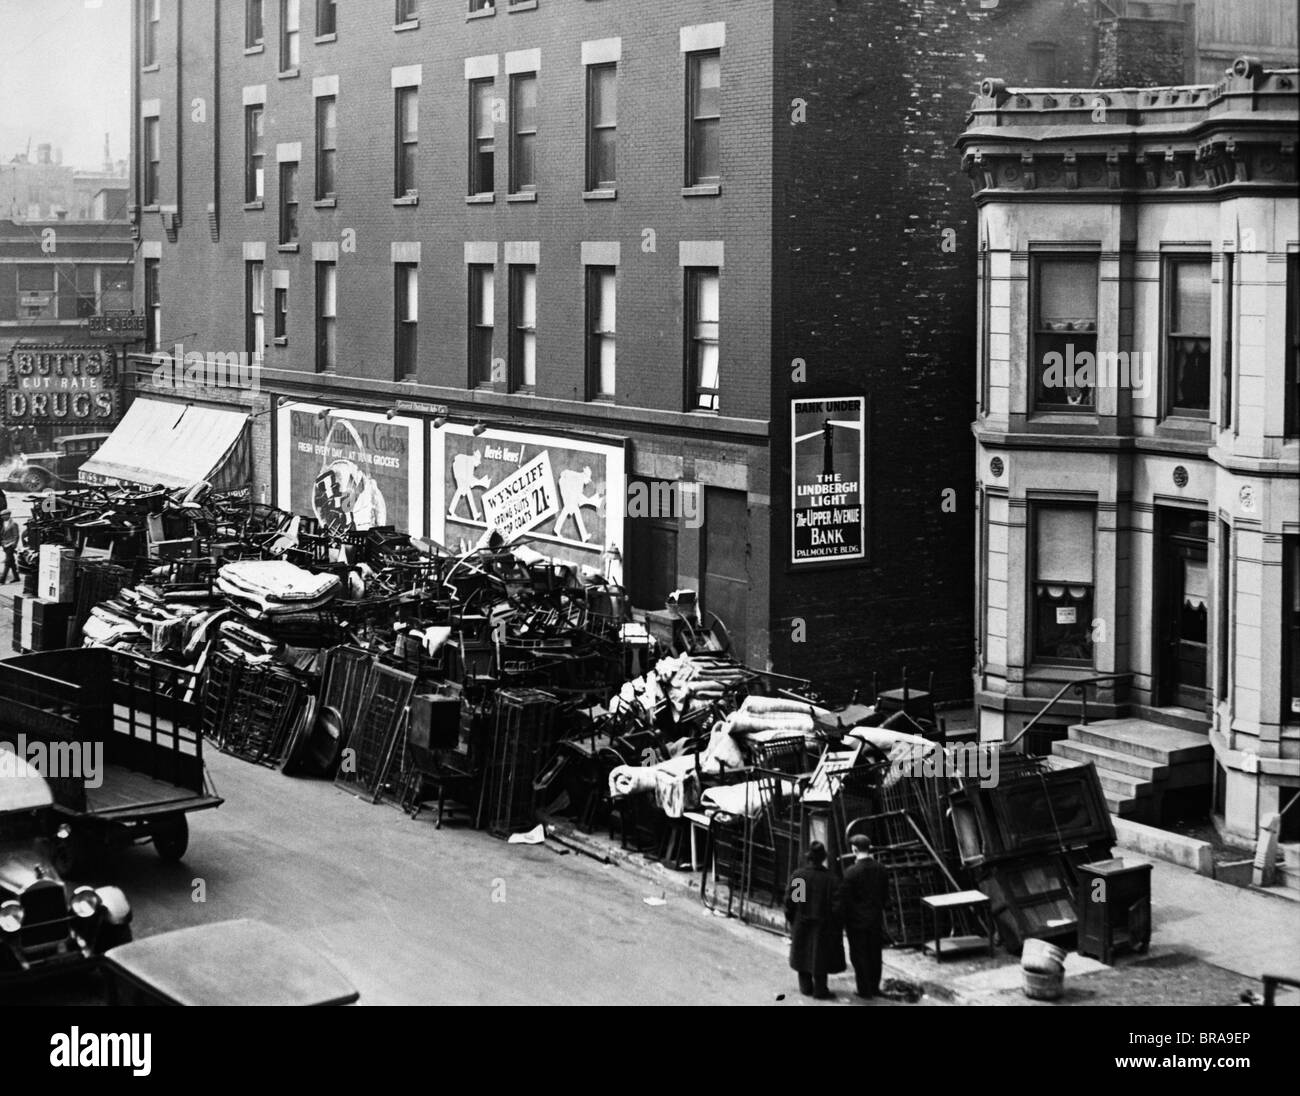 1930s GREAT DEPRESSION ERA MASS EVICTIONS PILES OF FURNITURE STACKED ALONG RESIDENTIAL STREET - Stock Image